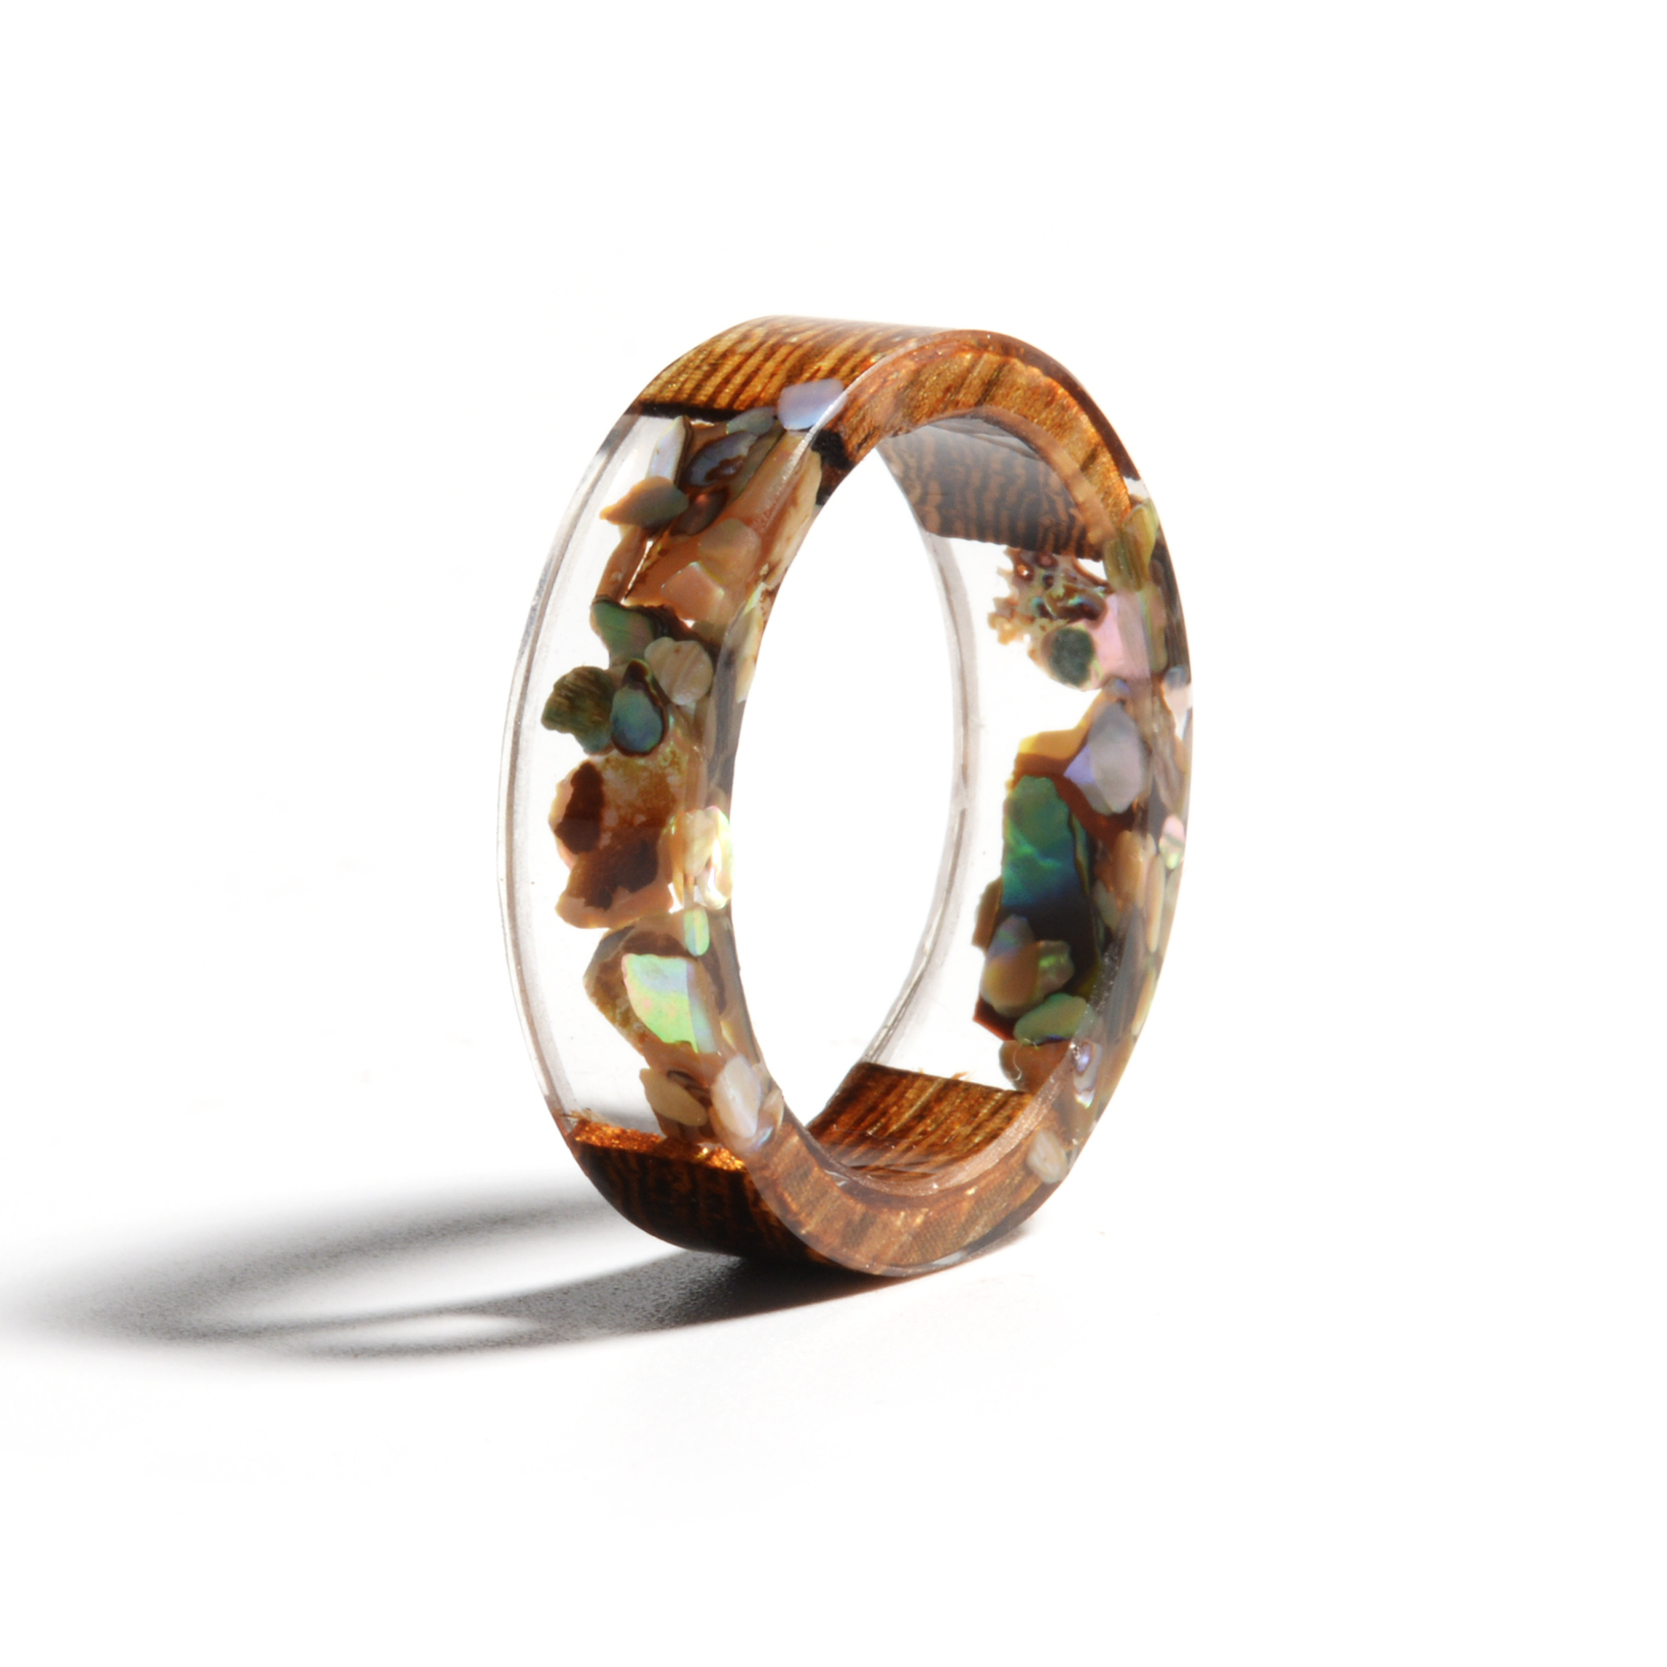 HTB1pvNYaoLrK1Rjy0Fjq6zYXFXaJ - Hot Sale Handmade Wood Resin Ring Dried Flowers Plants Inside Jewelry Resin Ring Transparent Anniversary Ring for Women